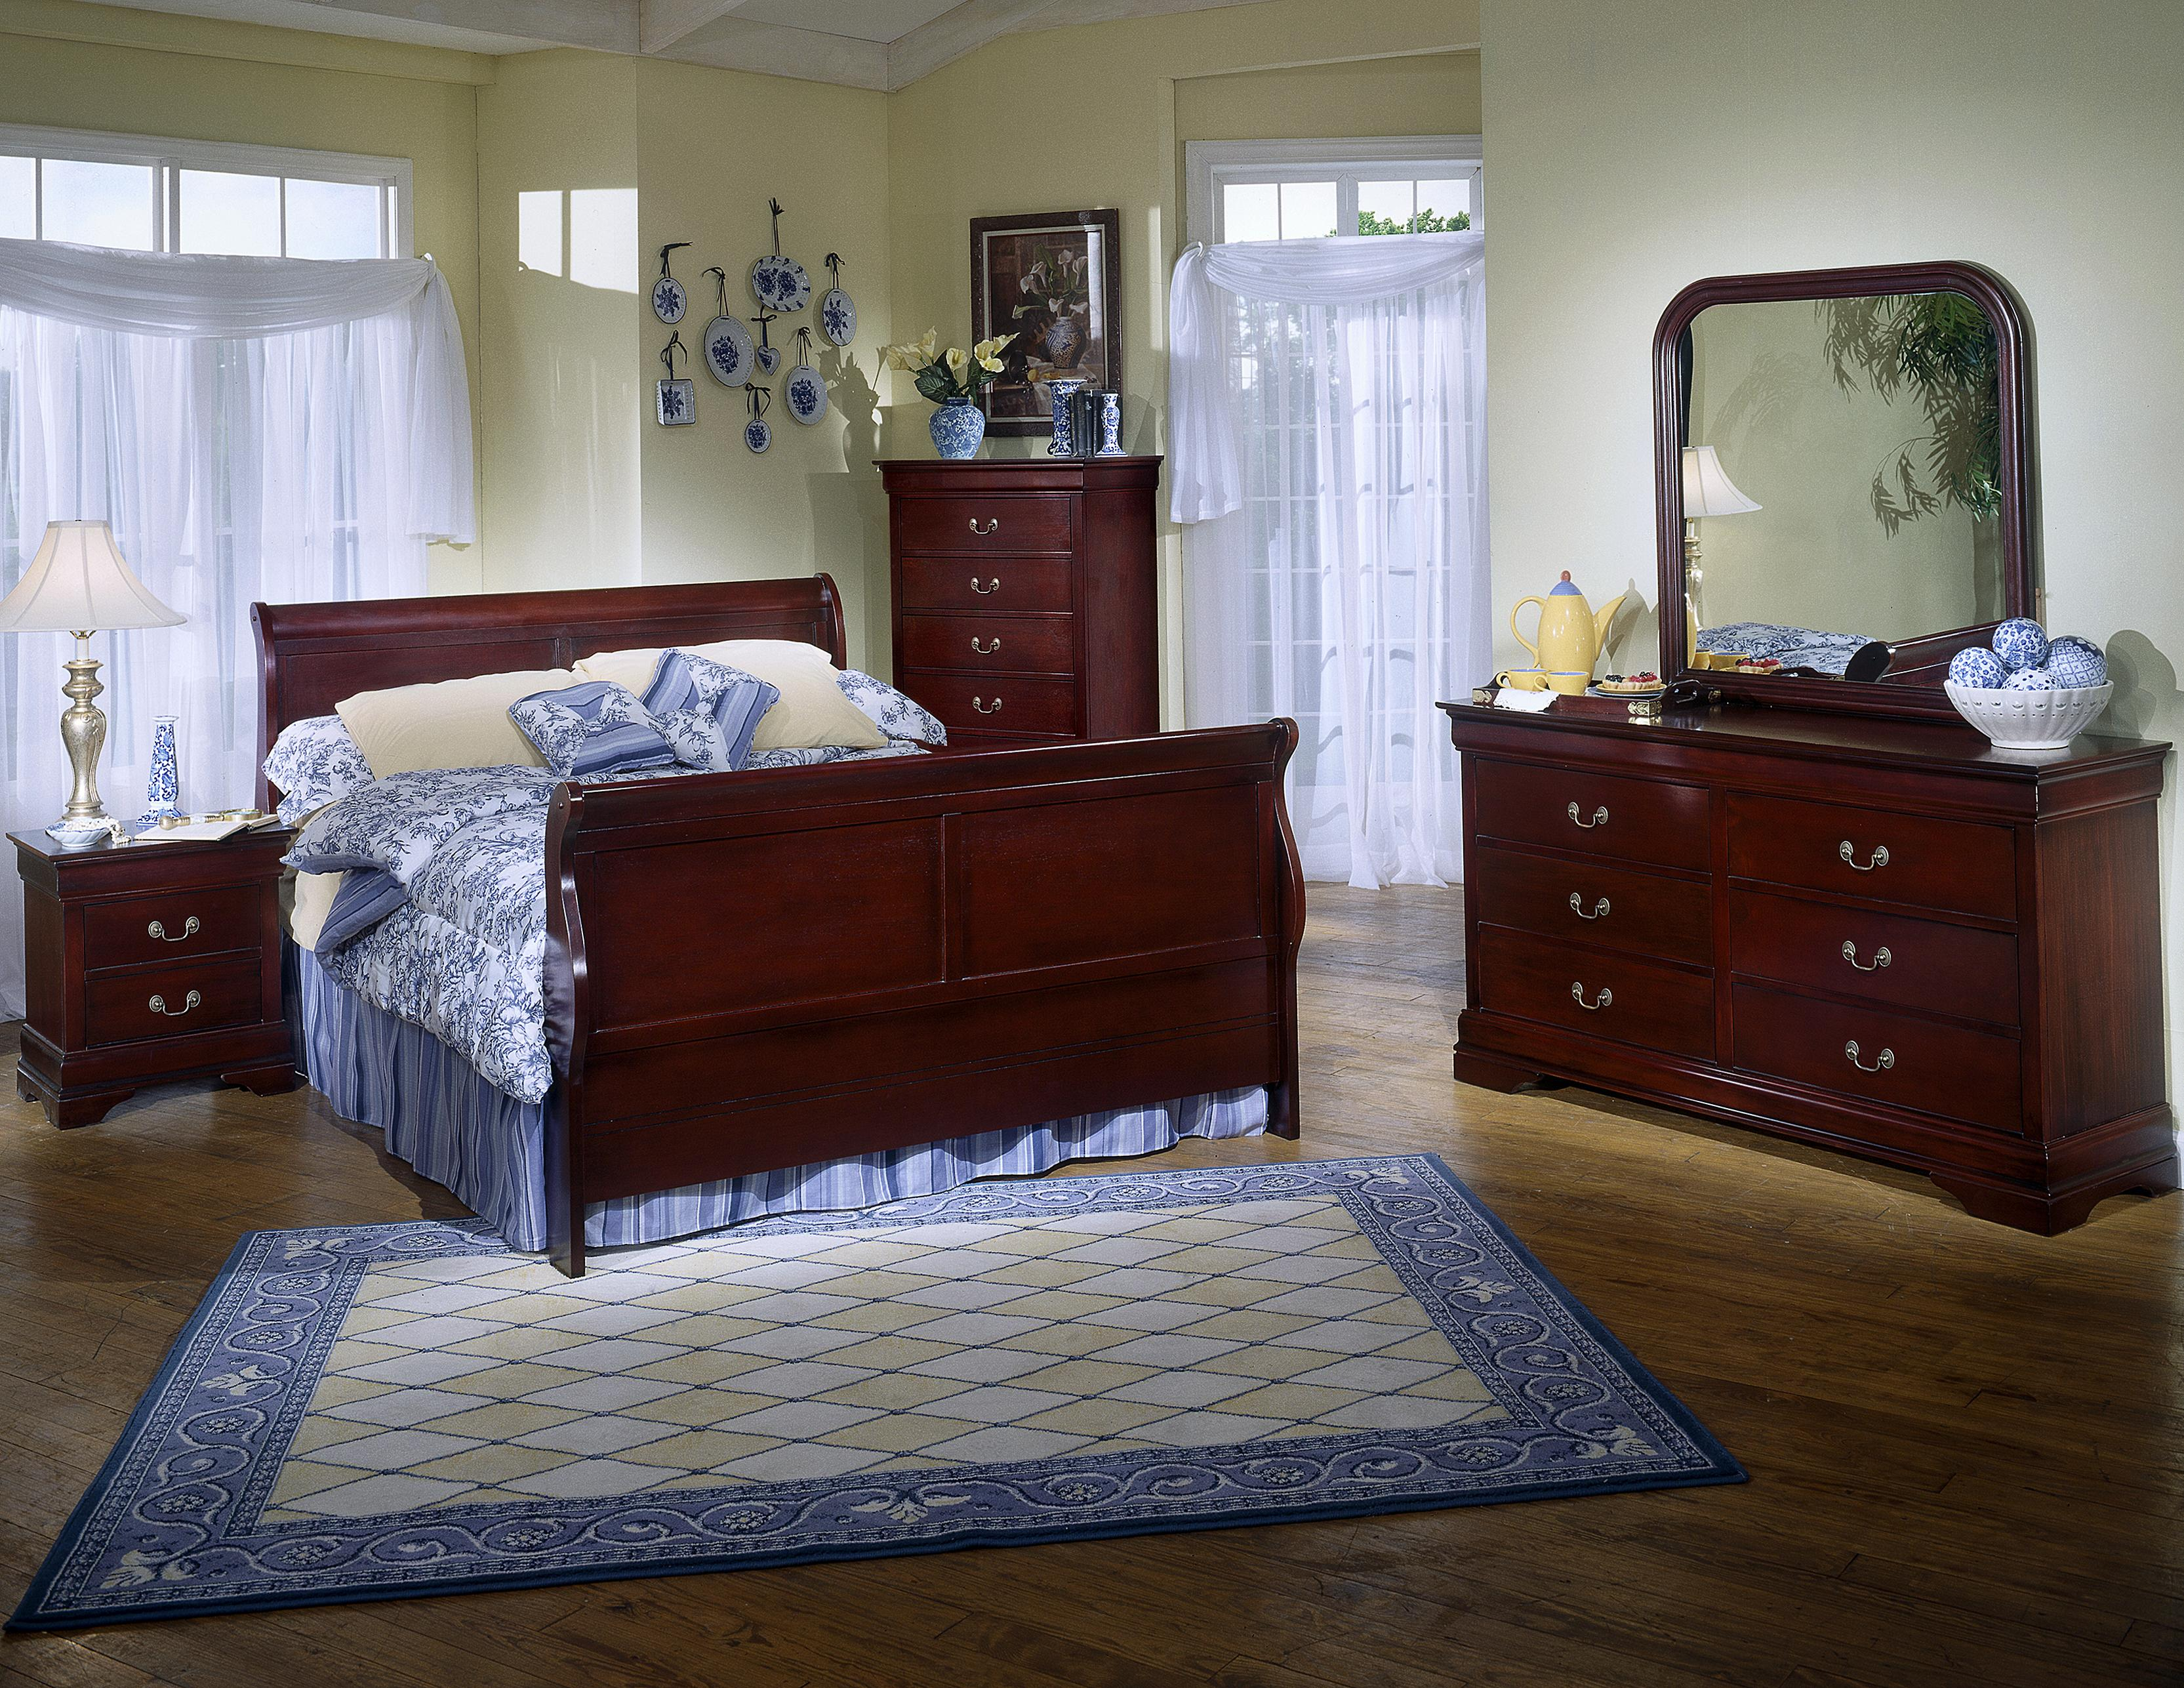 Lifestyle Furniture Bedroom Sets Lifestyle 5933 6 Drawer Dresser Rounded Square Mirror Combo